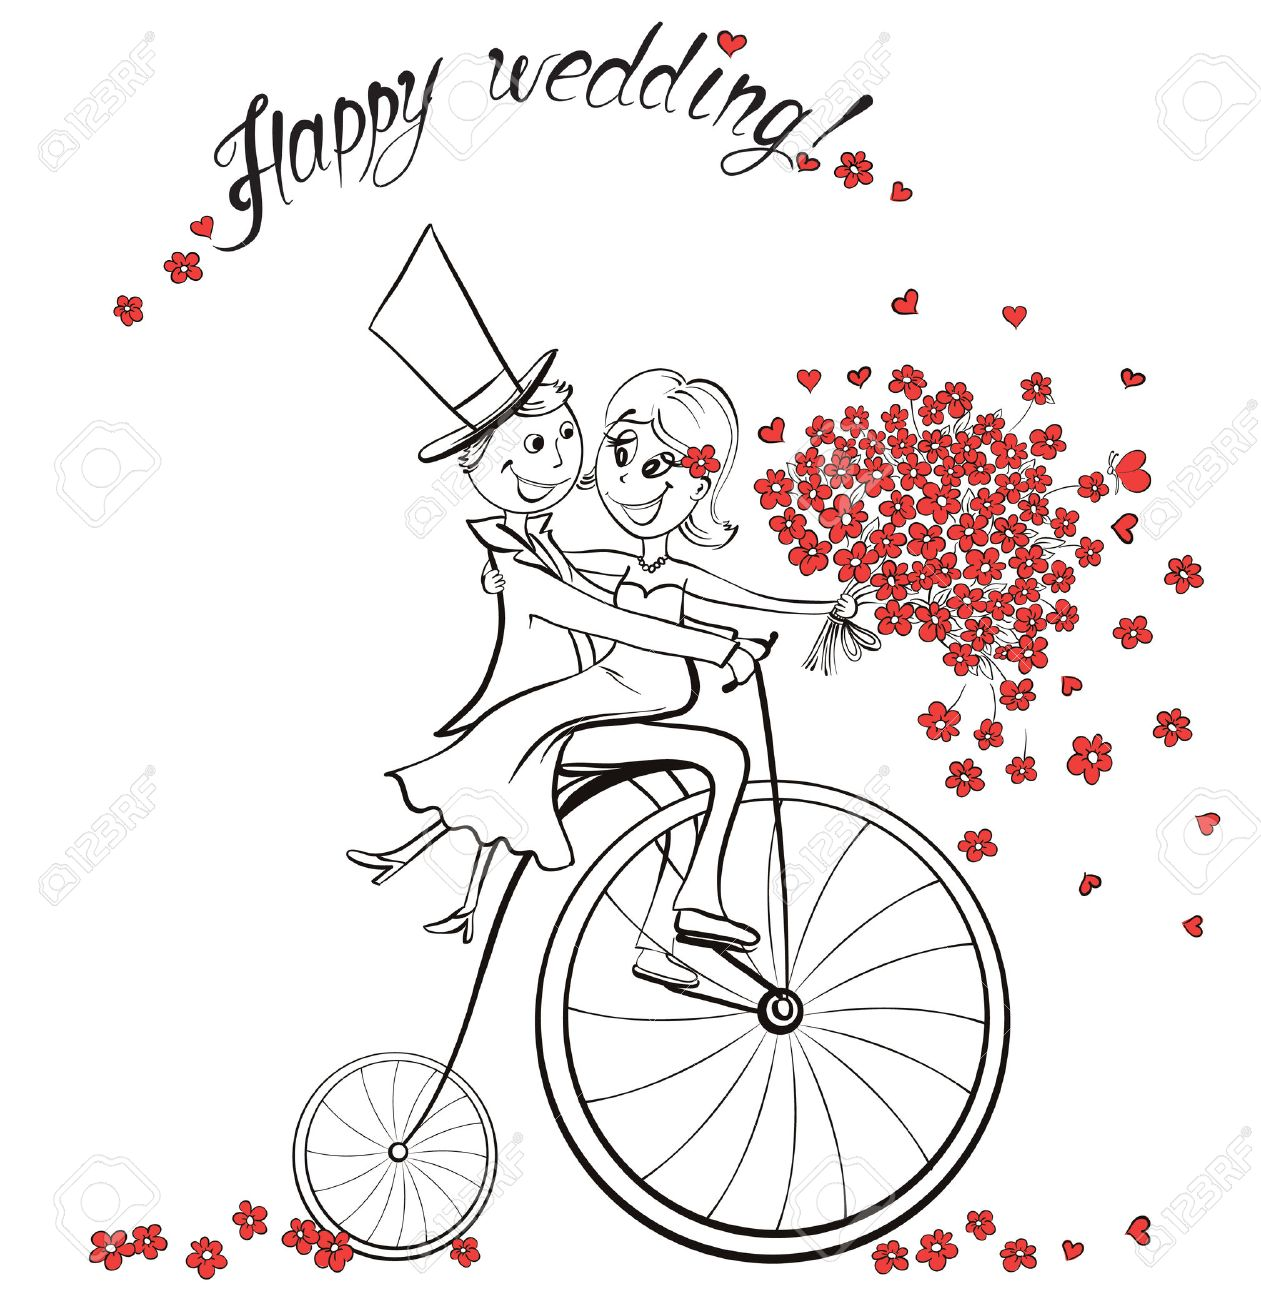 Just married. Hand drawn wedding couple in love on bicycle. Cute cartoon vector illustration - 53584973